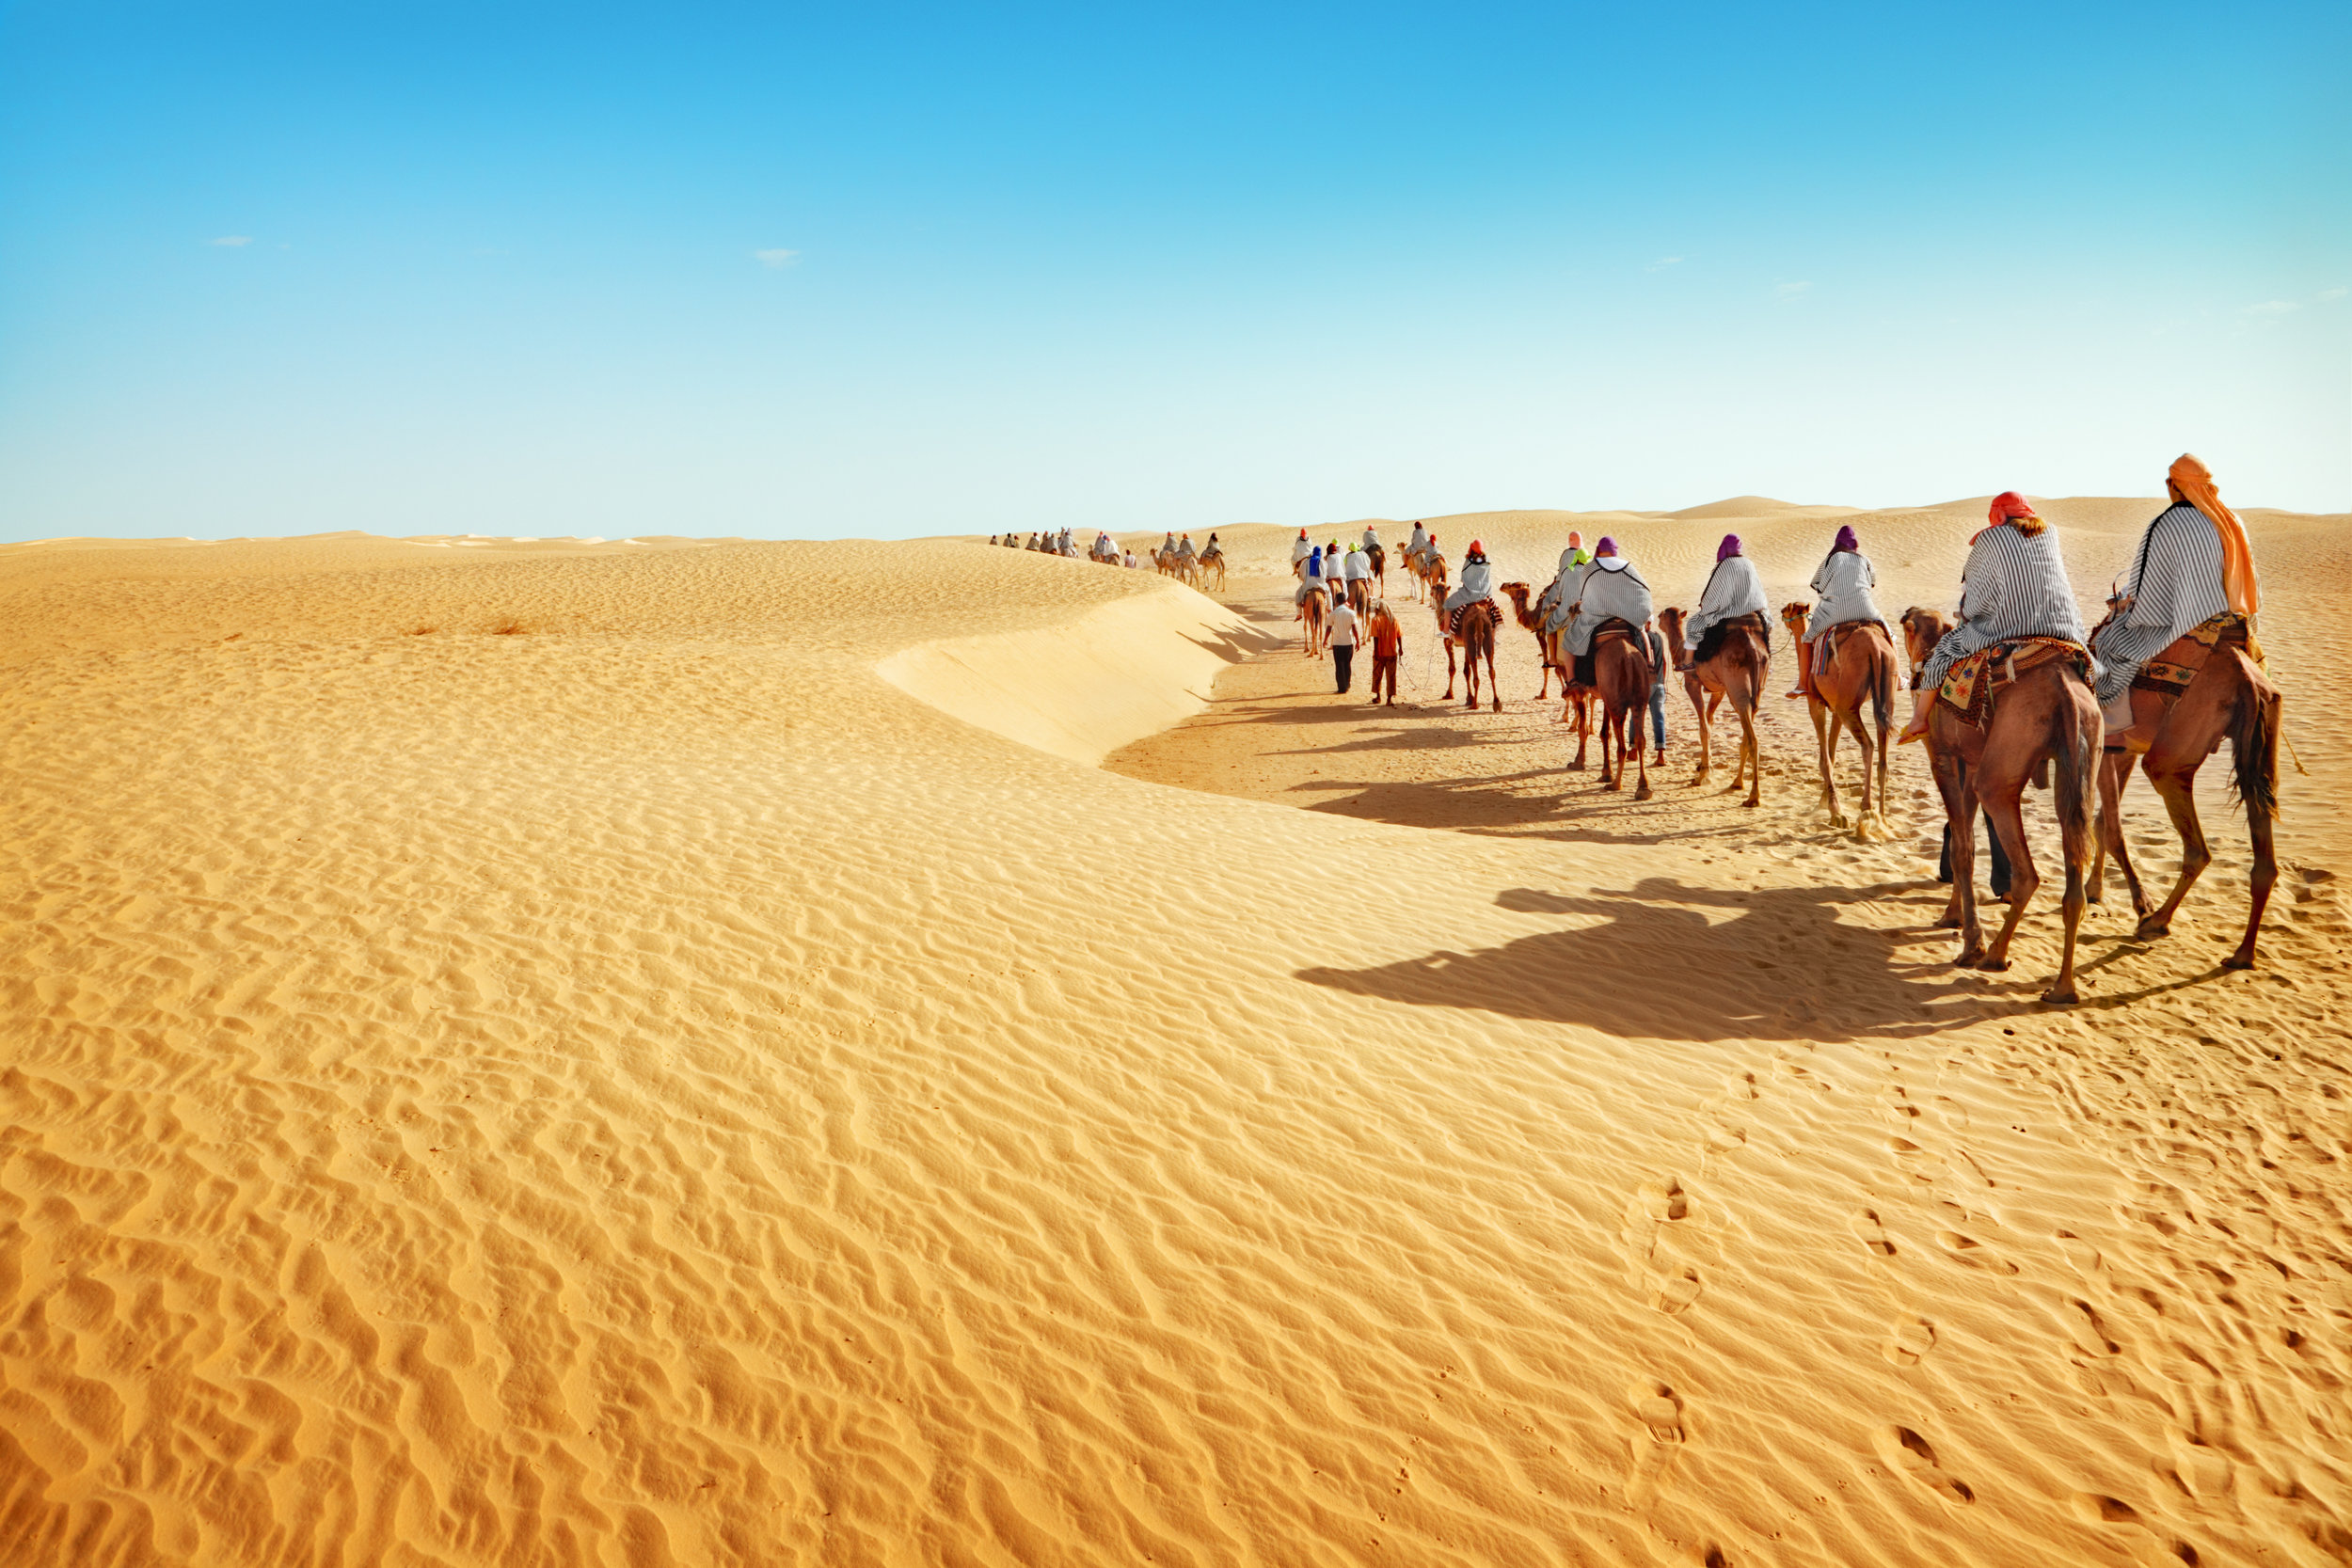 20. Fellow nomads! - The Sahara Desert, located in Africa,is 3.6 million square miles in size and is currently growing at the rate of half a mile per month. That is nearly the size of the United States! Most of the people who live in the Sahara Desert are nomads.